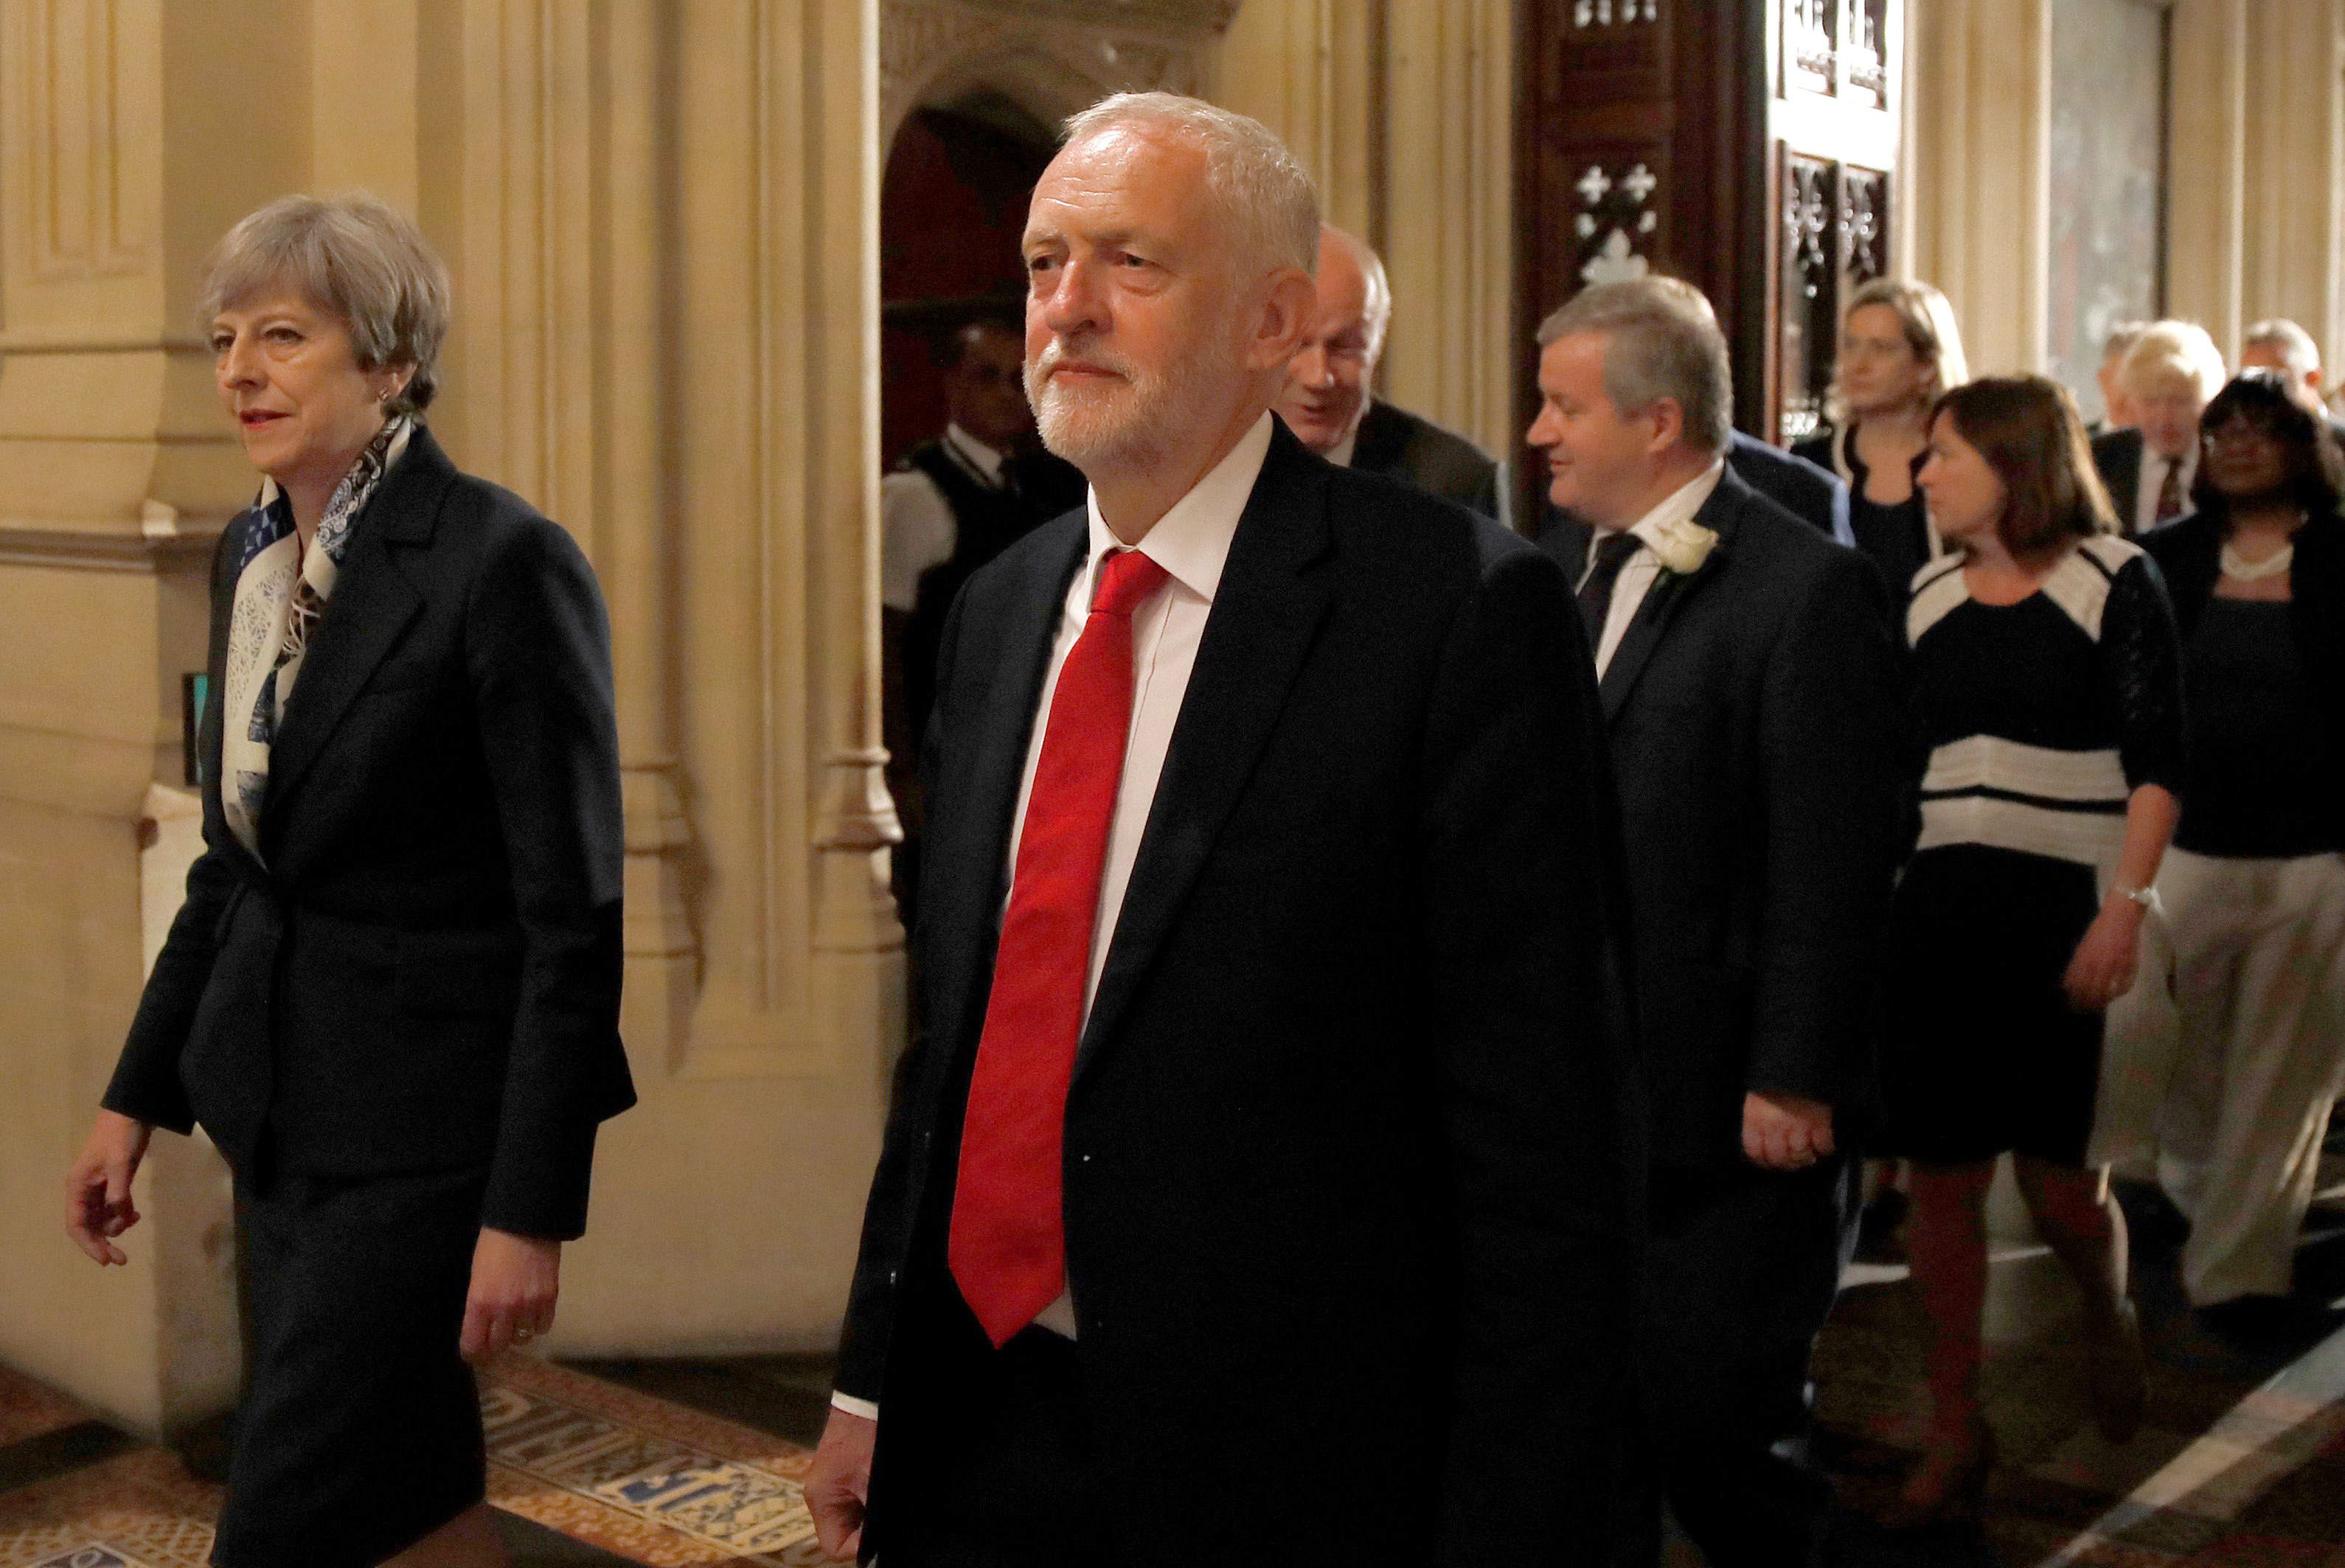 Jeremy Corbyn 'Observed Correct Protocol' By Not Bowing To The